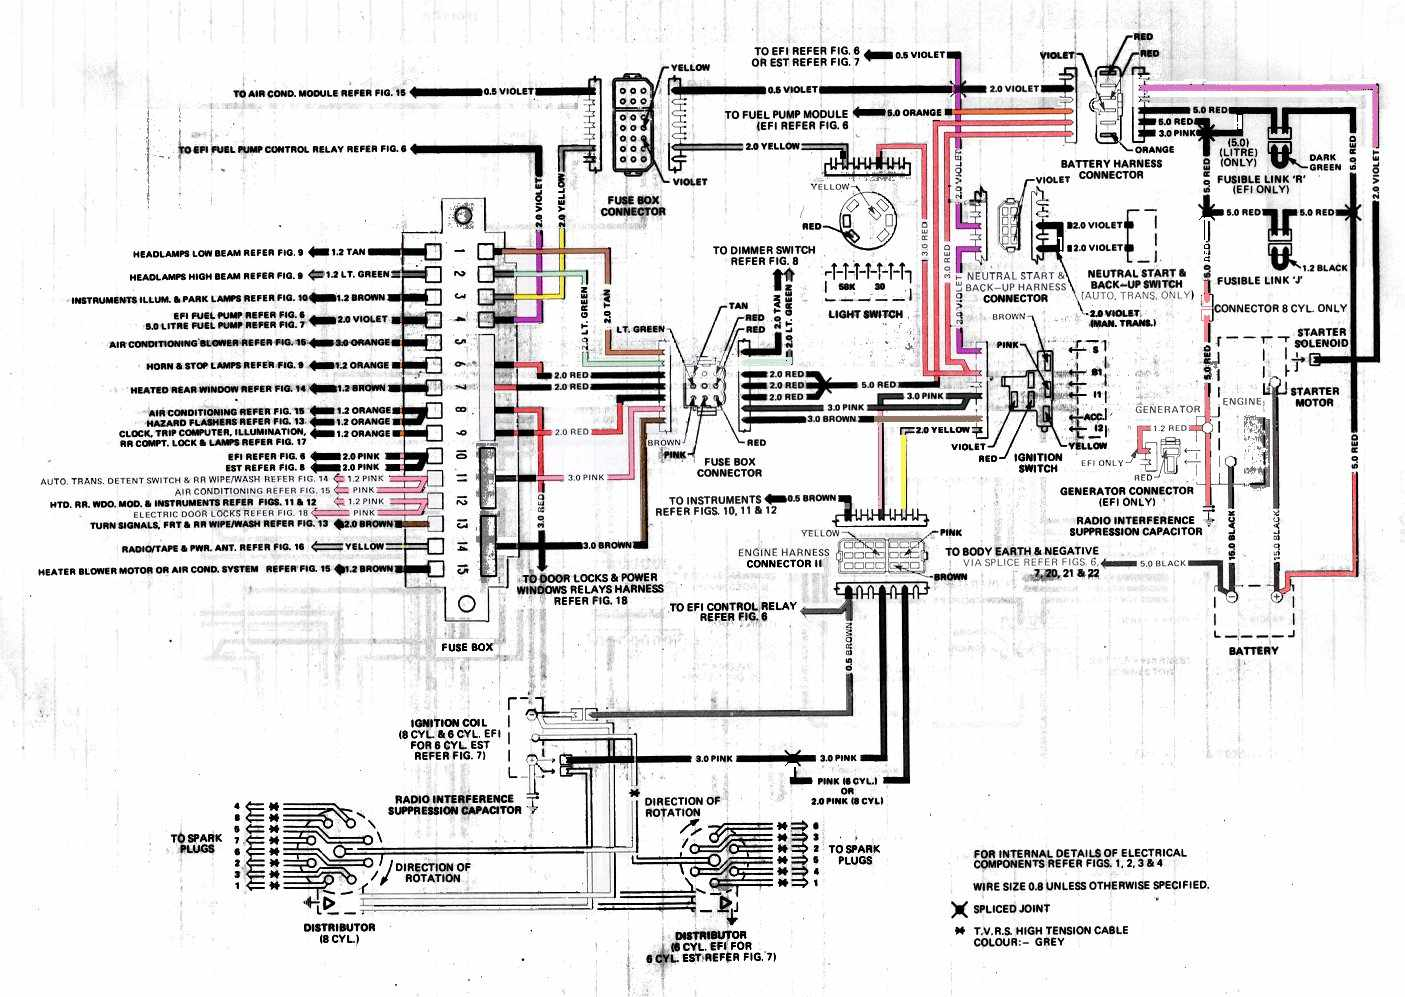 Holden Vk Commodore Generator Electrical Wiring Diagram Wiring Diagram